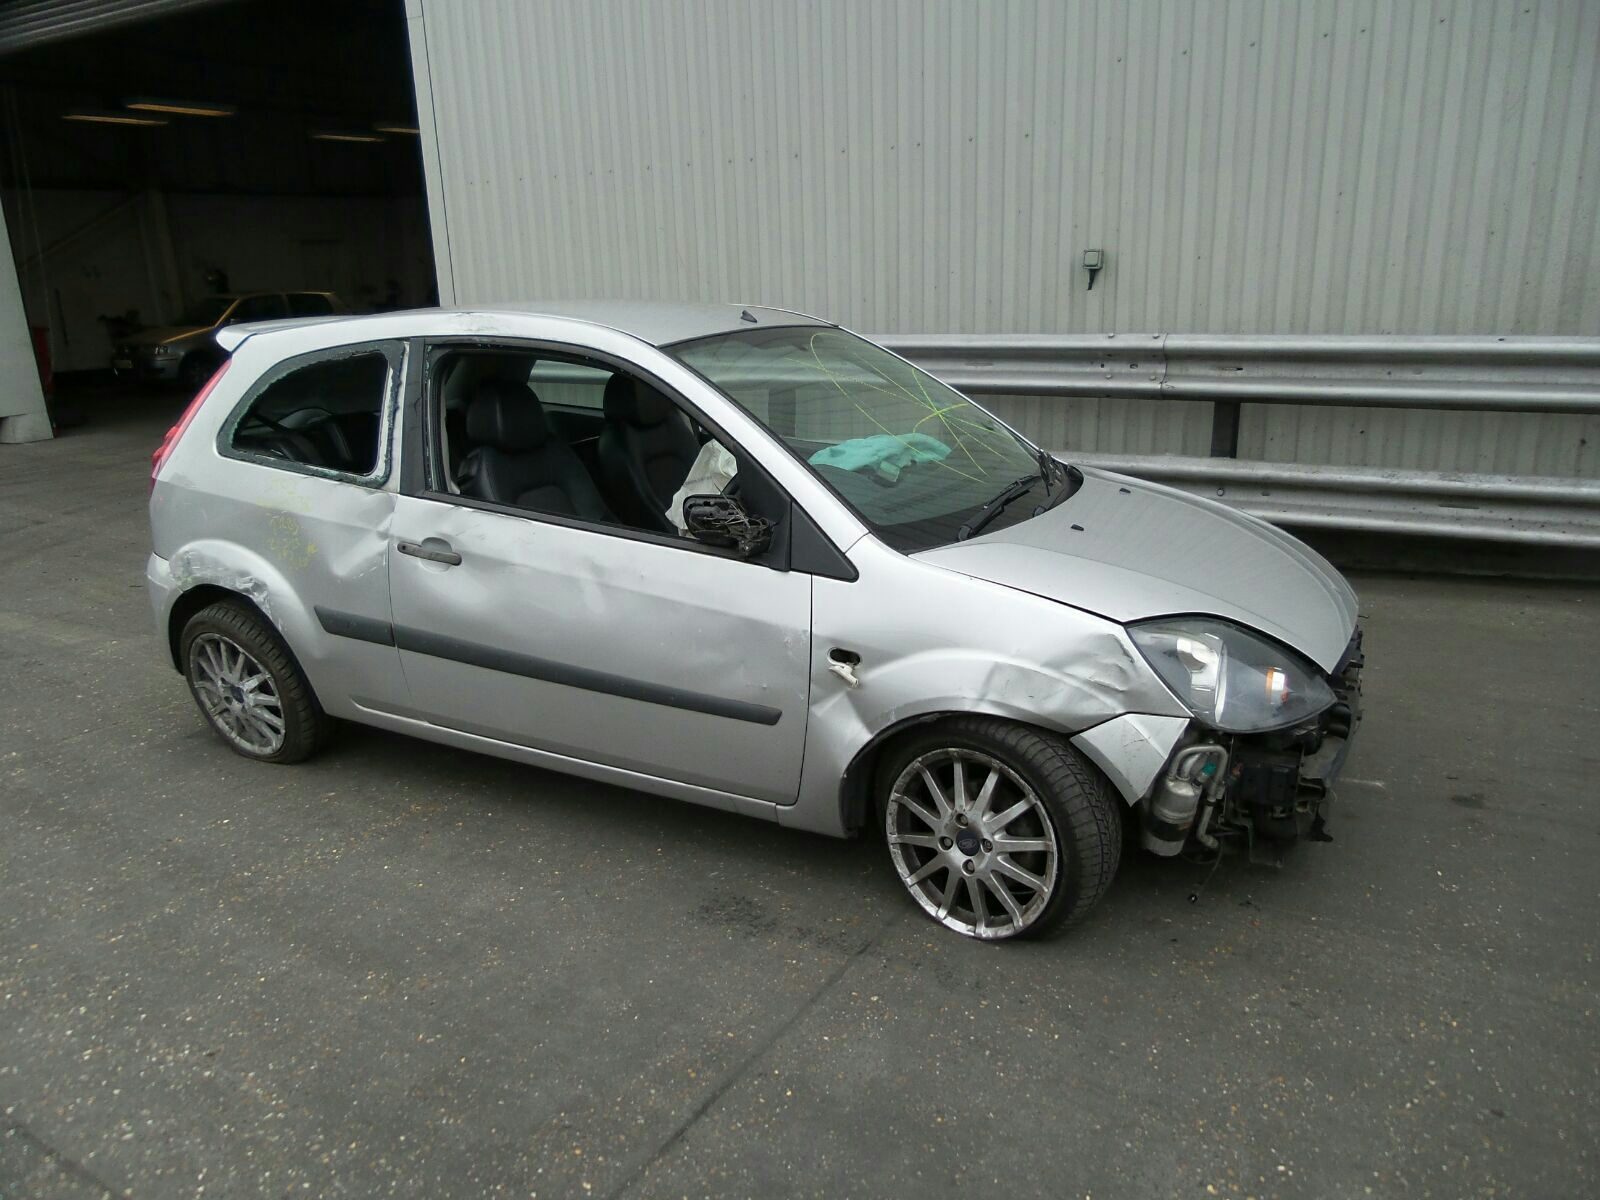 Image for a 2007 Ford Fiesta 1.6 Diesel HHJB Engine